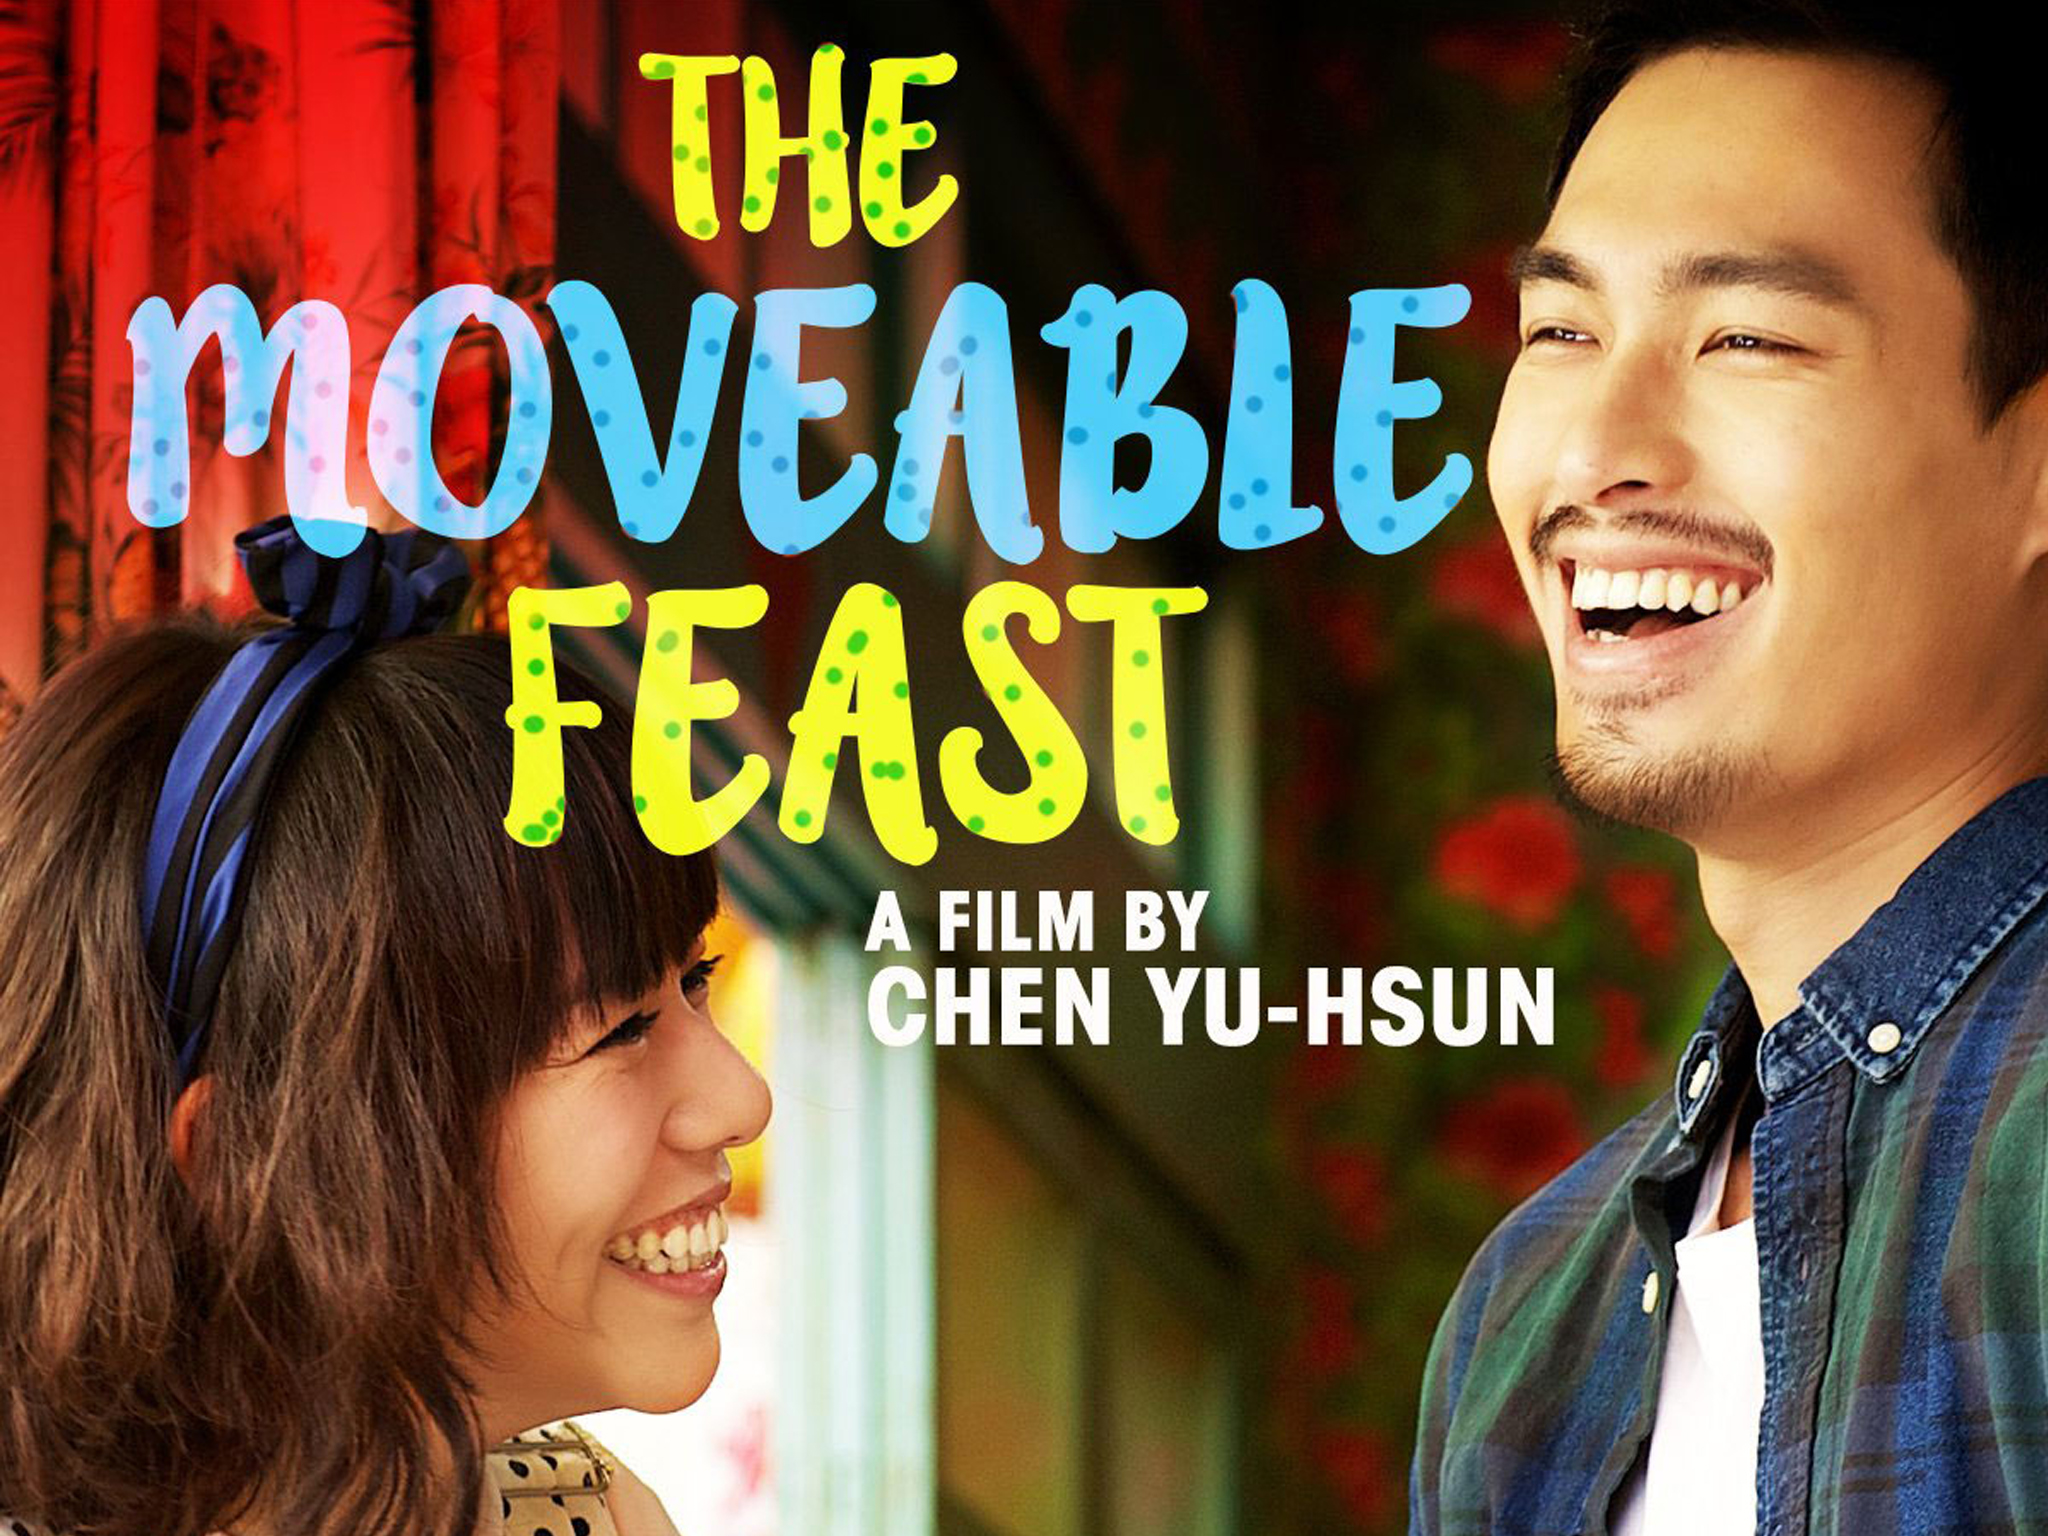 When a failed model finds her family's restaurant near failure itself, a master chef helps her family return to glory. Directed by Yu-hsun Chen.